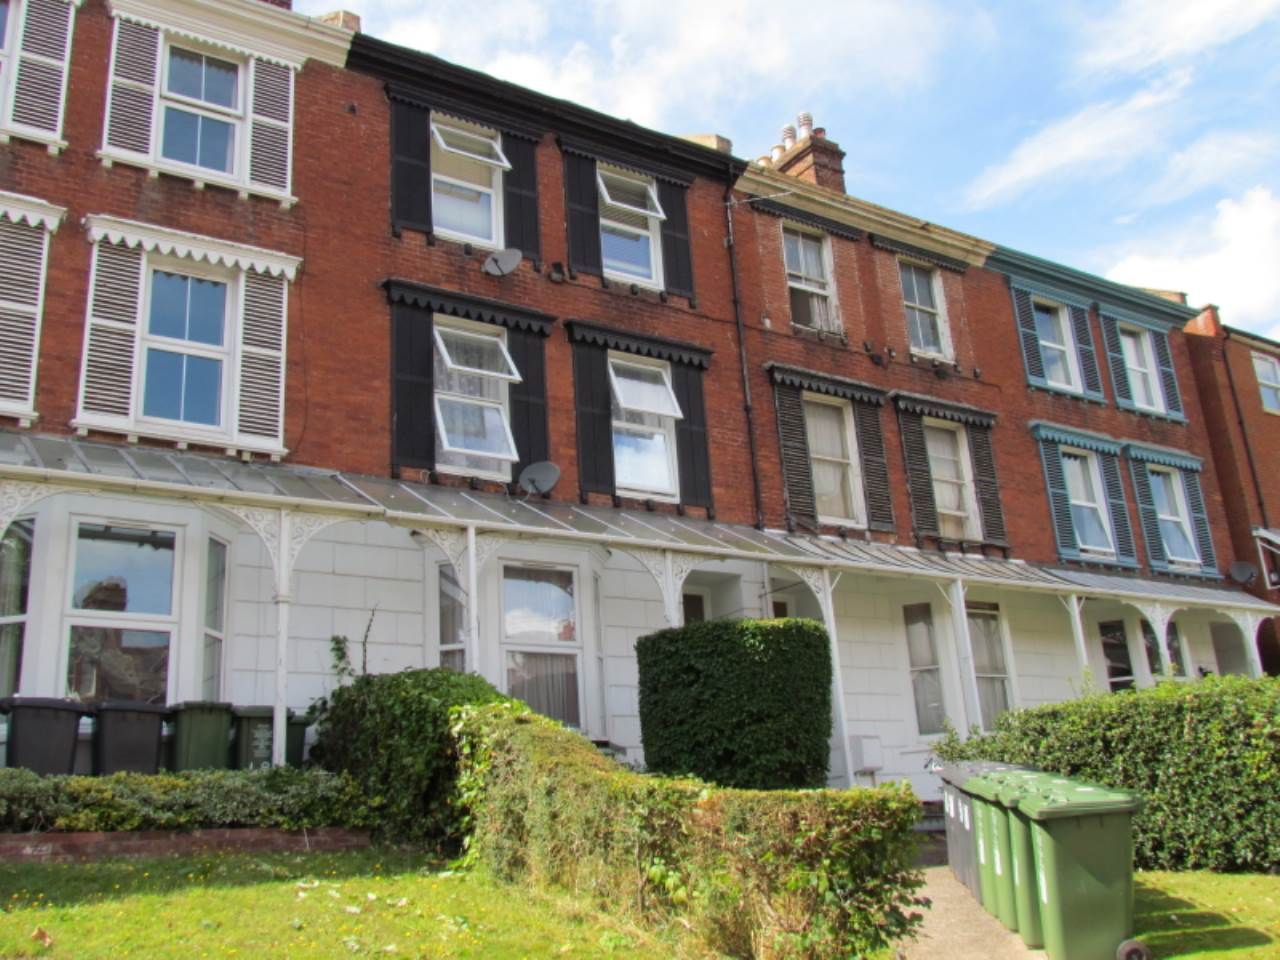 1 bed house / flat share to rent in Old Tiverton Road, EX4